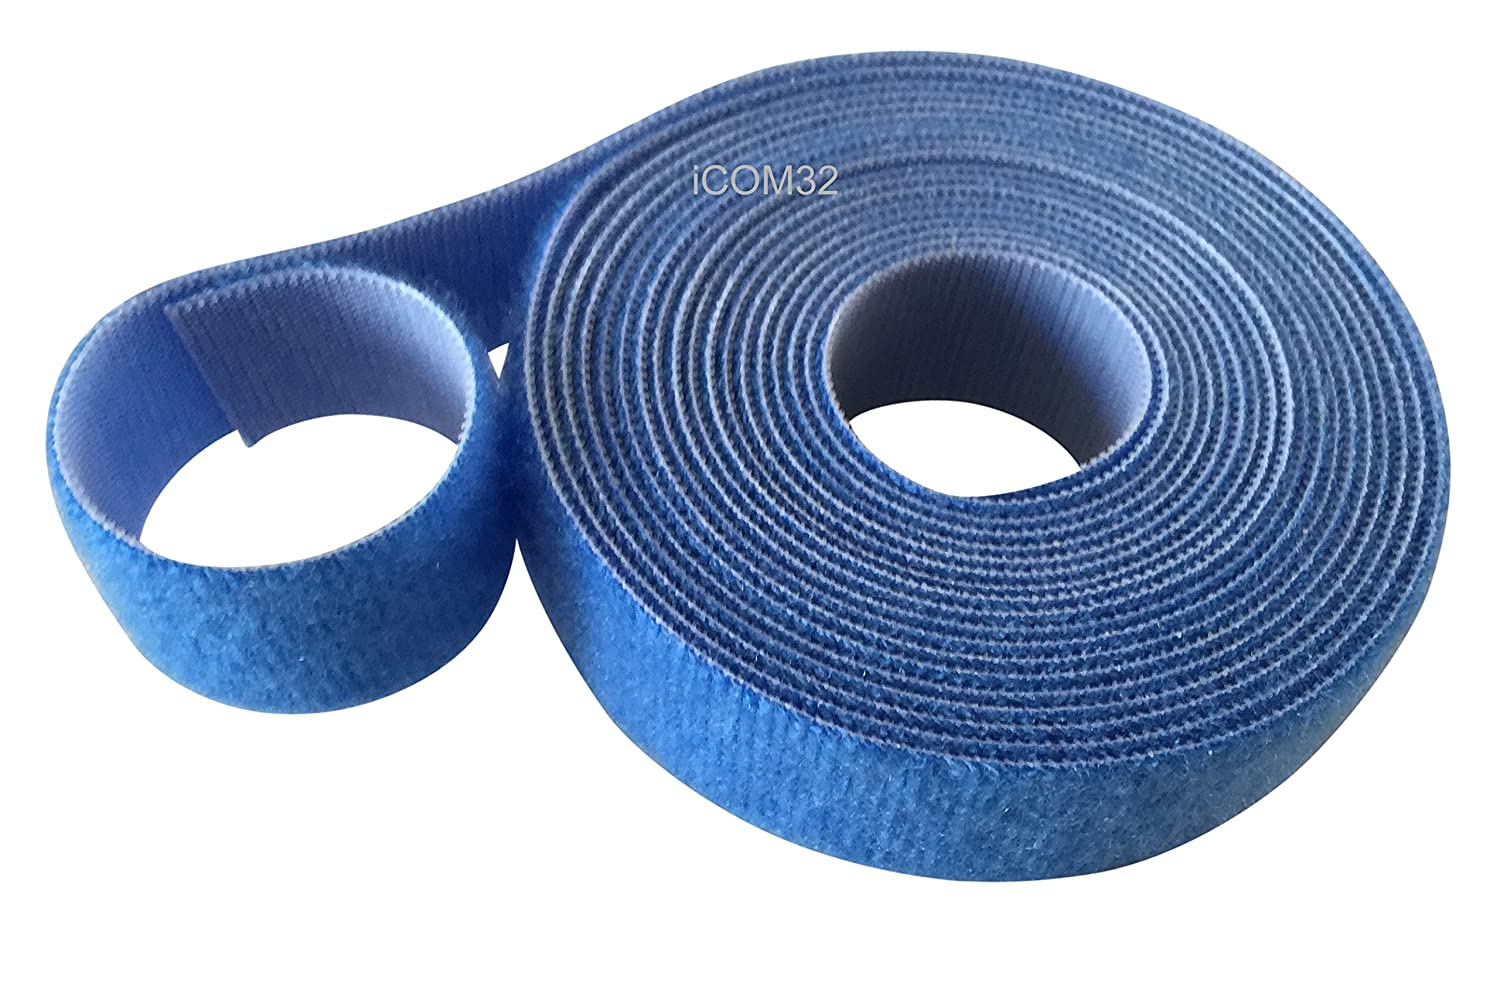 VELCRO® Brand Hook and loop ONE-WRAP® back to back Strapping in BLUE 2CM Wide X 2 Metres Long VELCRO®